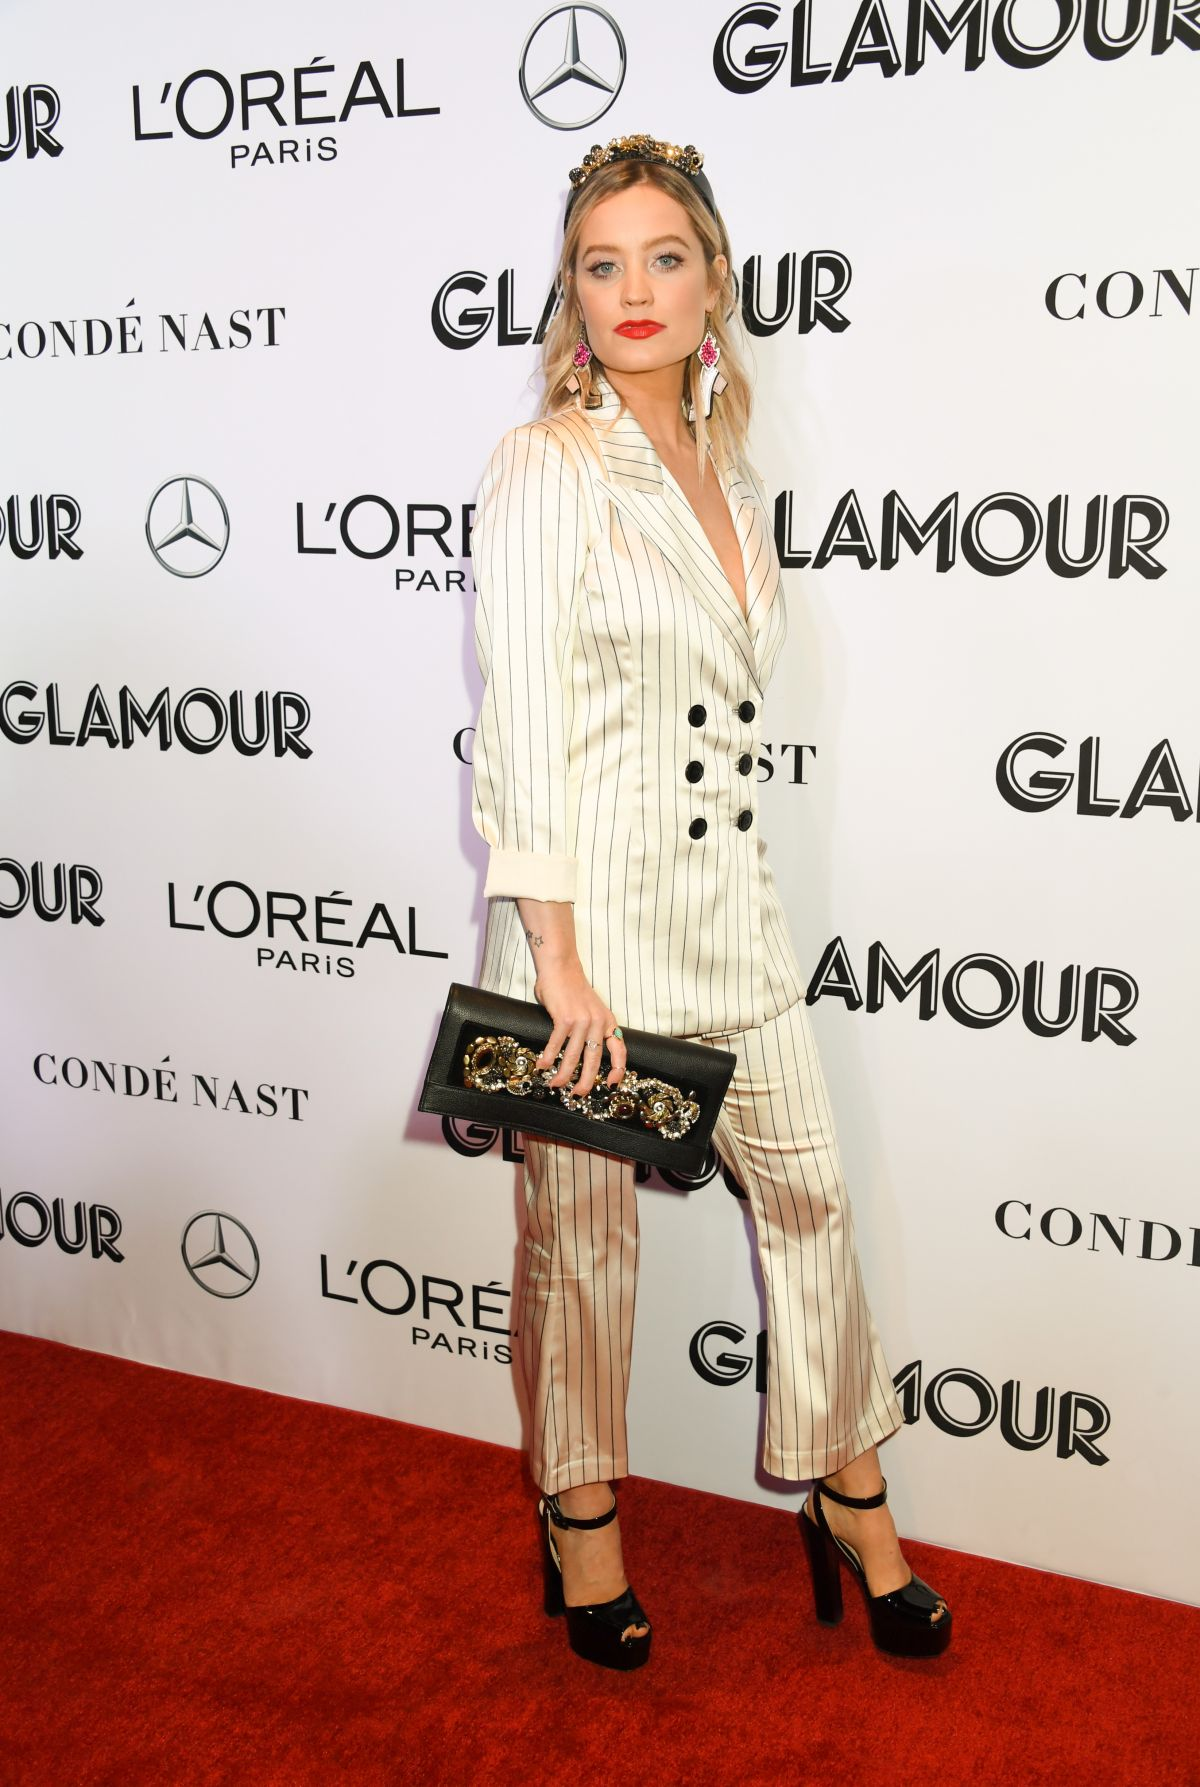 092fe9d8e9dd Laura Whitmore At Glamour's 28th Annual Women of the Year Awards, New York